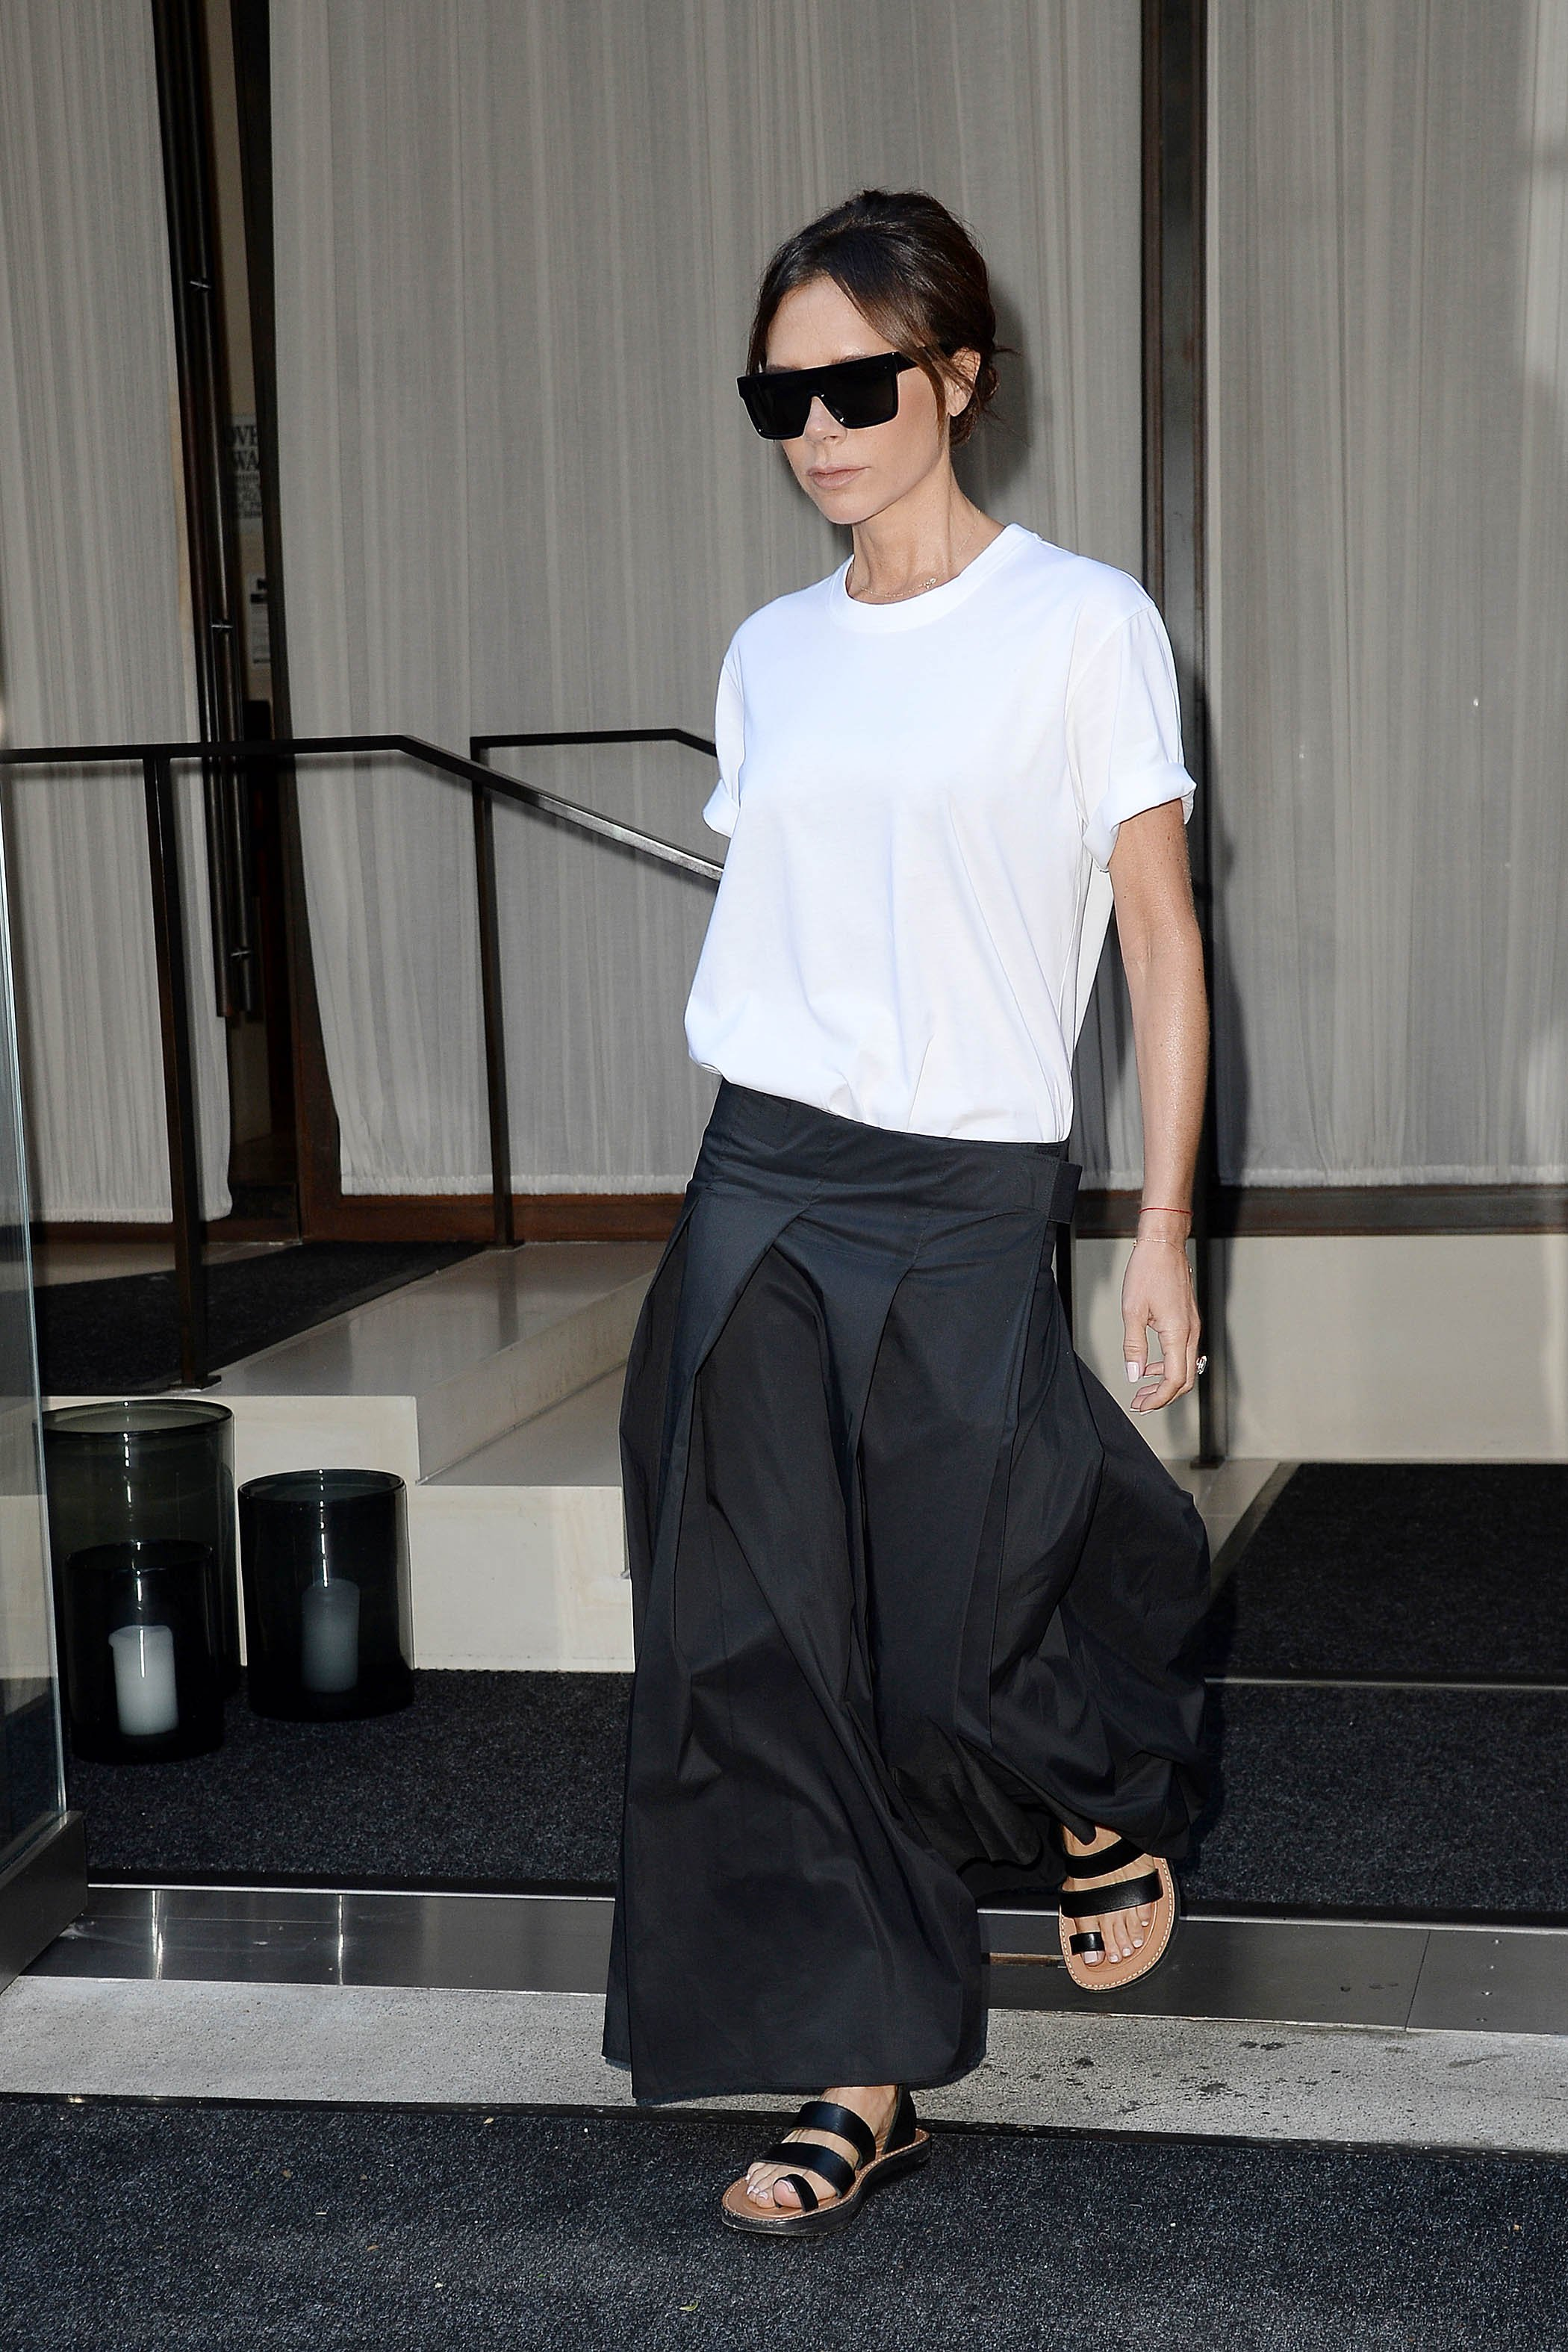 , New York, NY - 9/8/17-Jessica Alba and Victoria Beckham Leave their Hotels During NYFW  -PICTURED: Victoria Beckham -, Image: 348712004, License: Rights-managed, Restrictions: , Model Release: no, Credit line: Profimedia, INSTAR Images